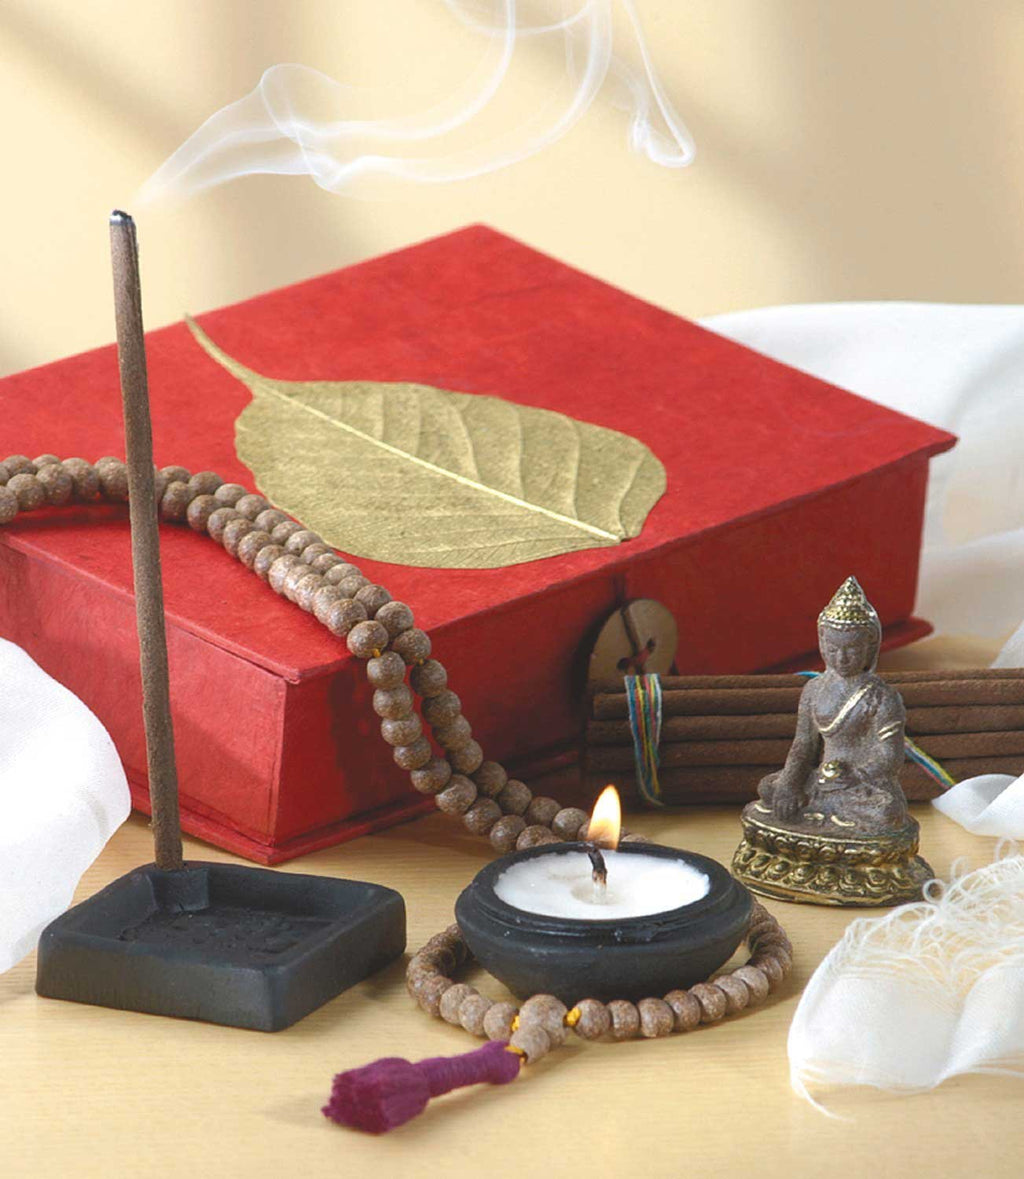 Gold Bodhi Travel Altar Buddha Travel Altar portable altar incense ttravel altar kit buddhist travel altar how to make a travel altar hindu travel altar crystals